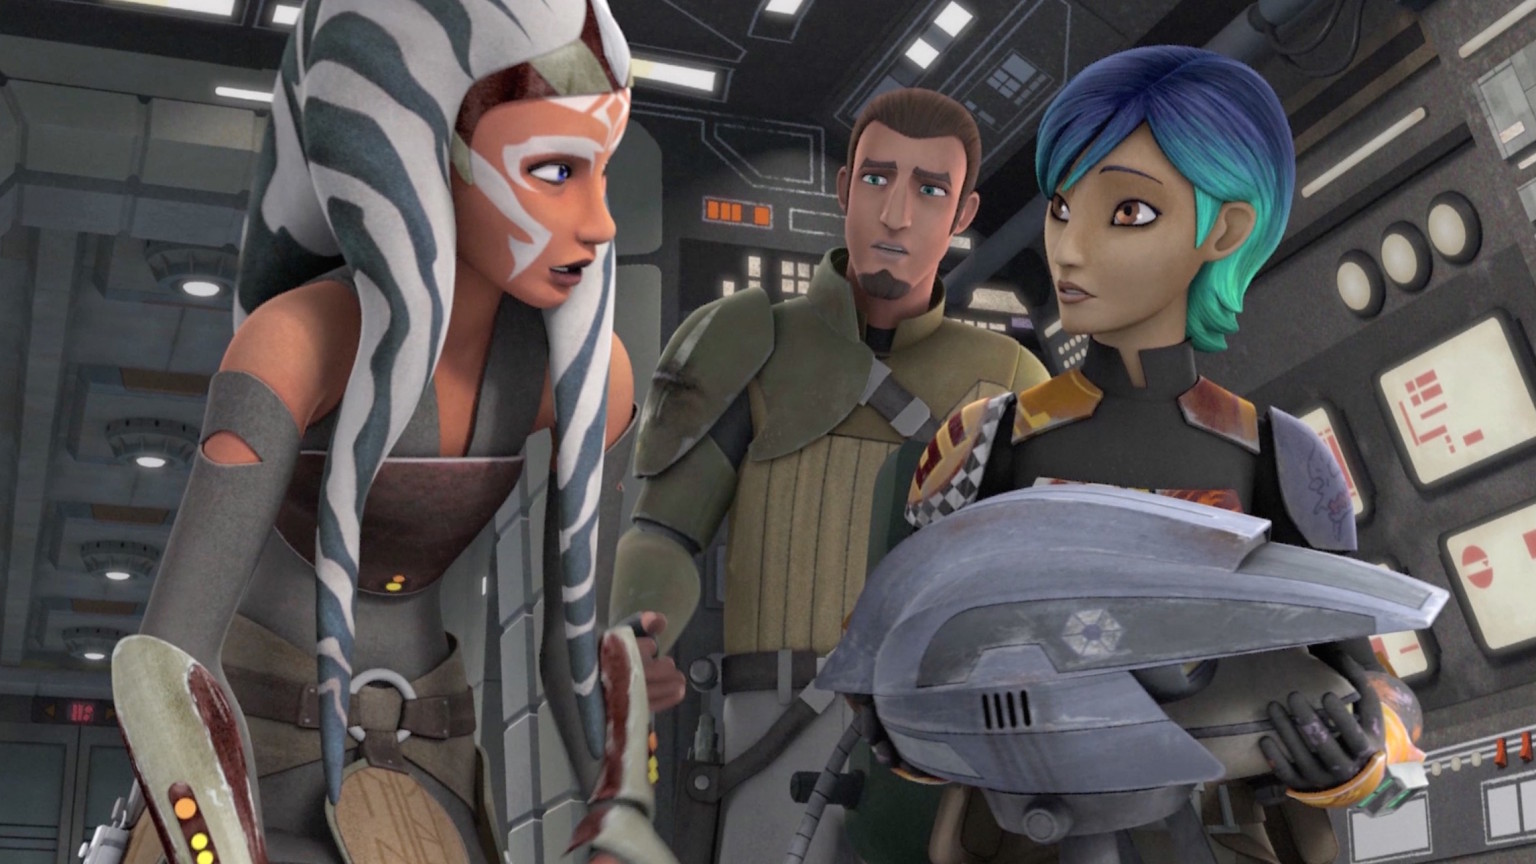 Star Wars Rebels premiere date revealed